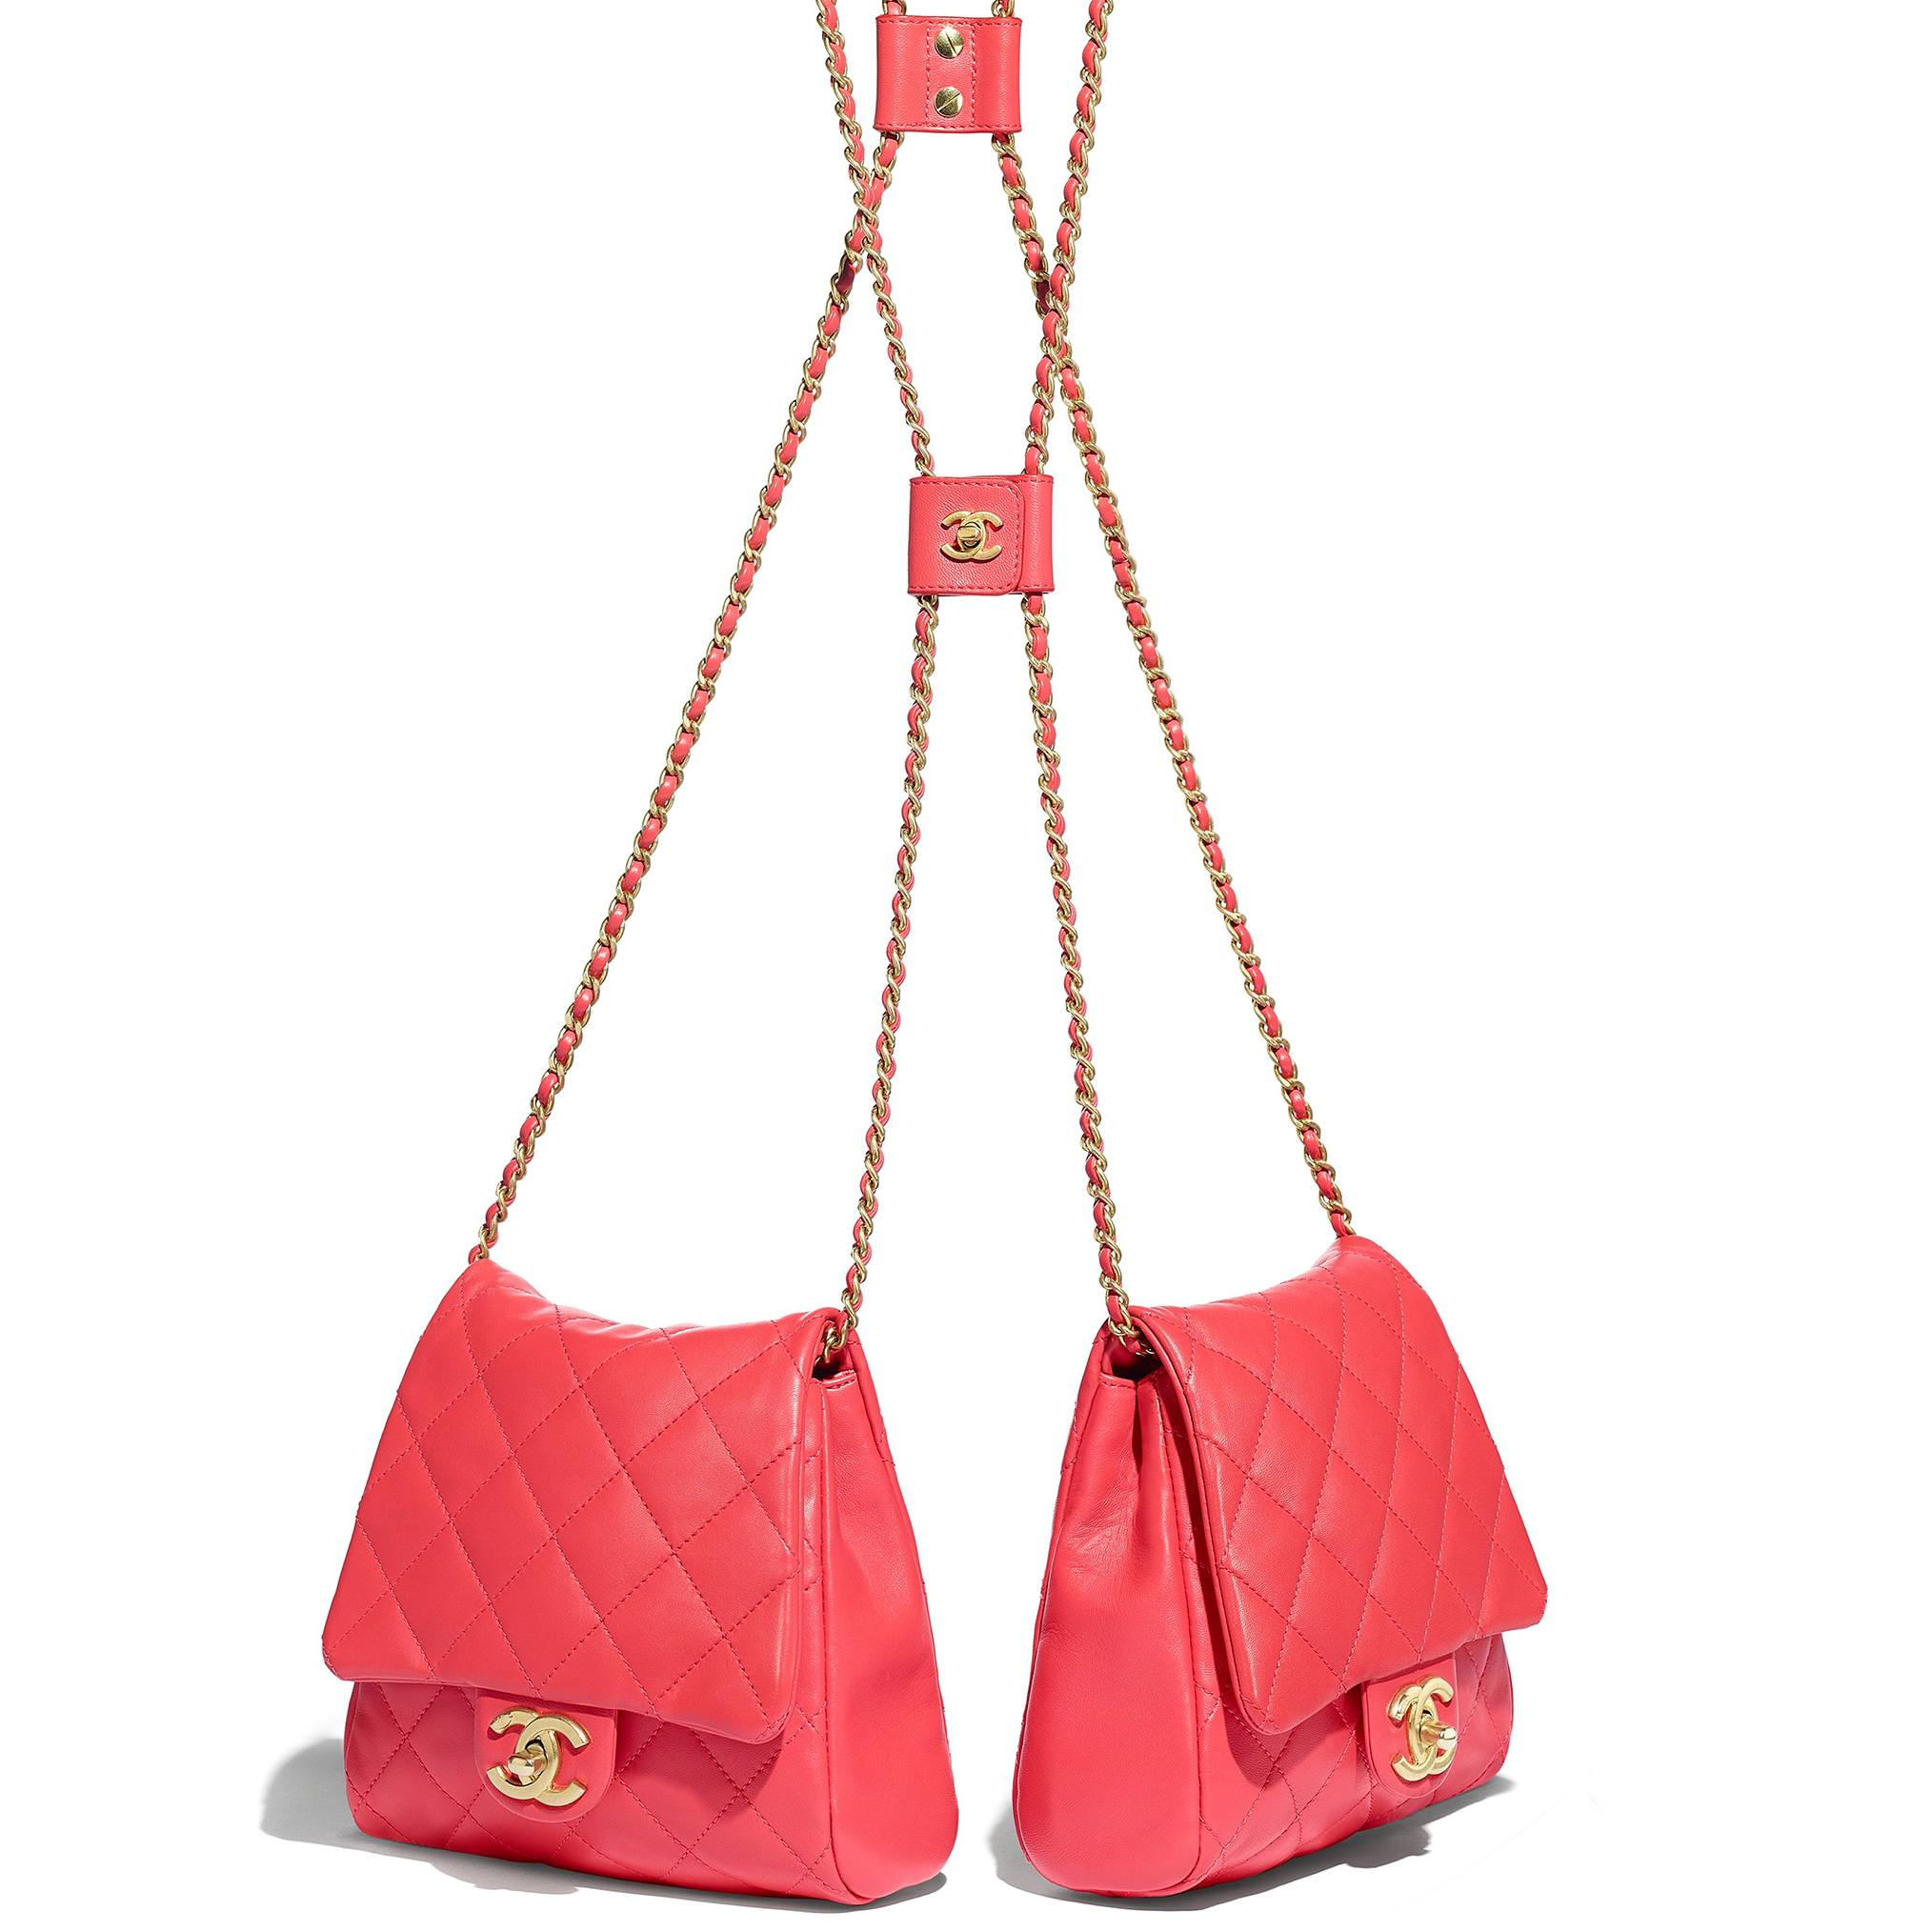 Pink Chanel double quilted Side bags that go over the shoulder